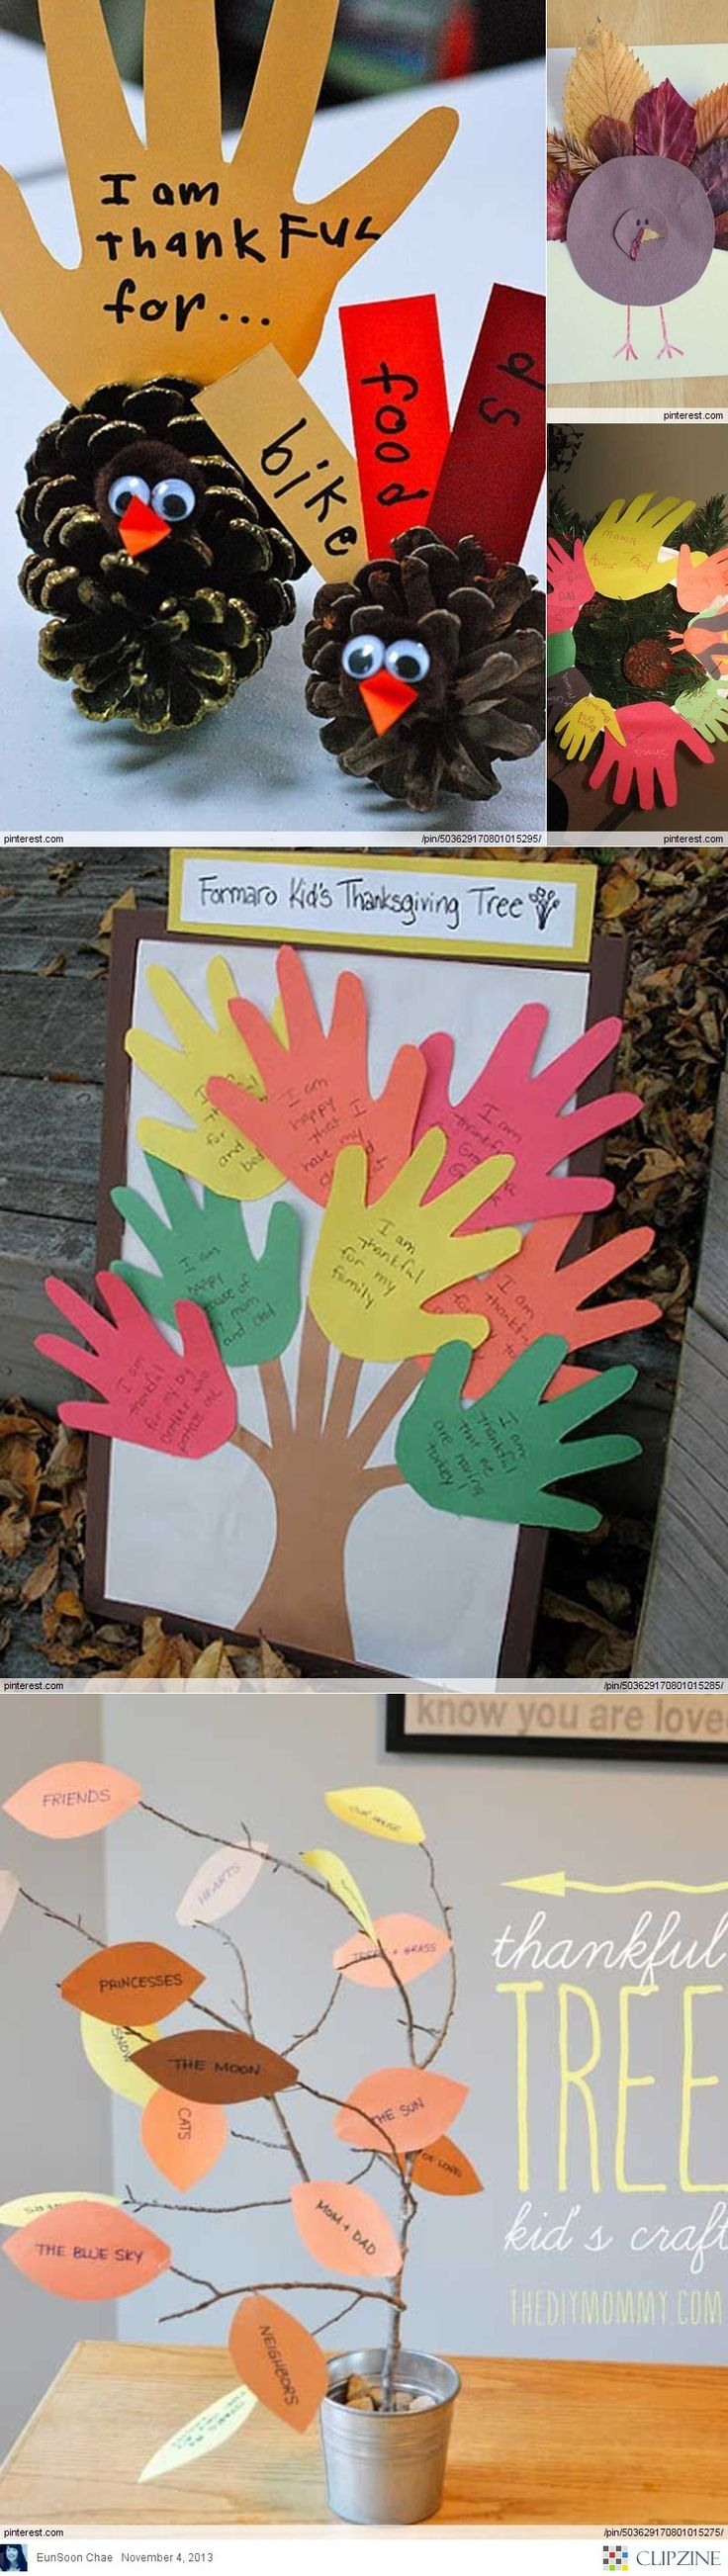 thanksgiving awesome books for kids pinterest